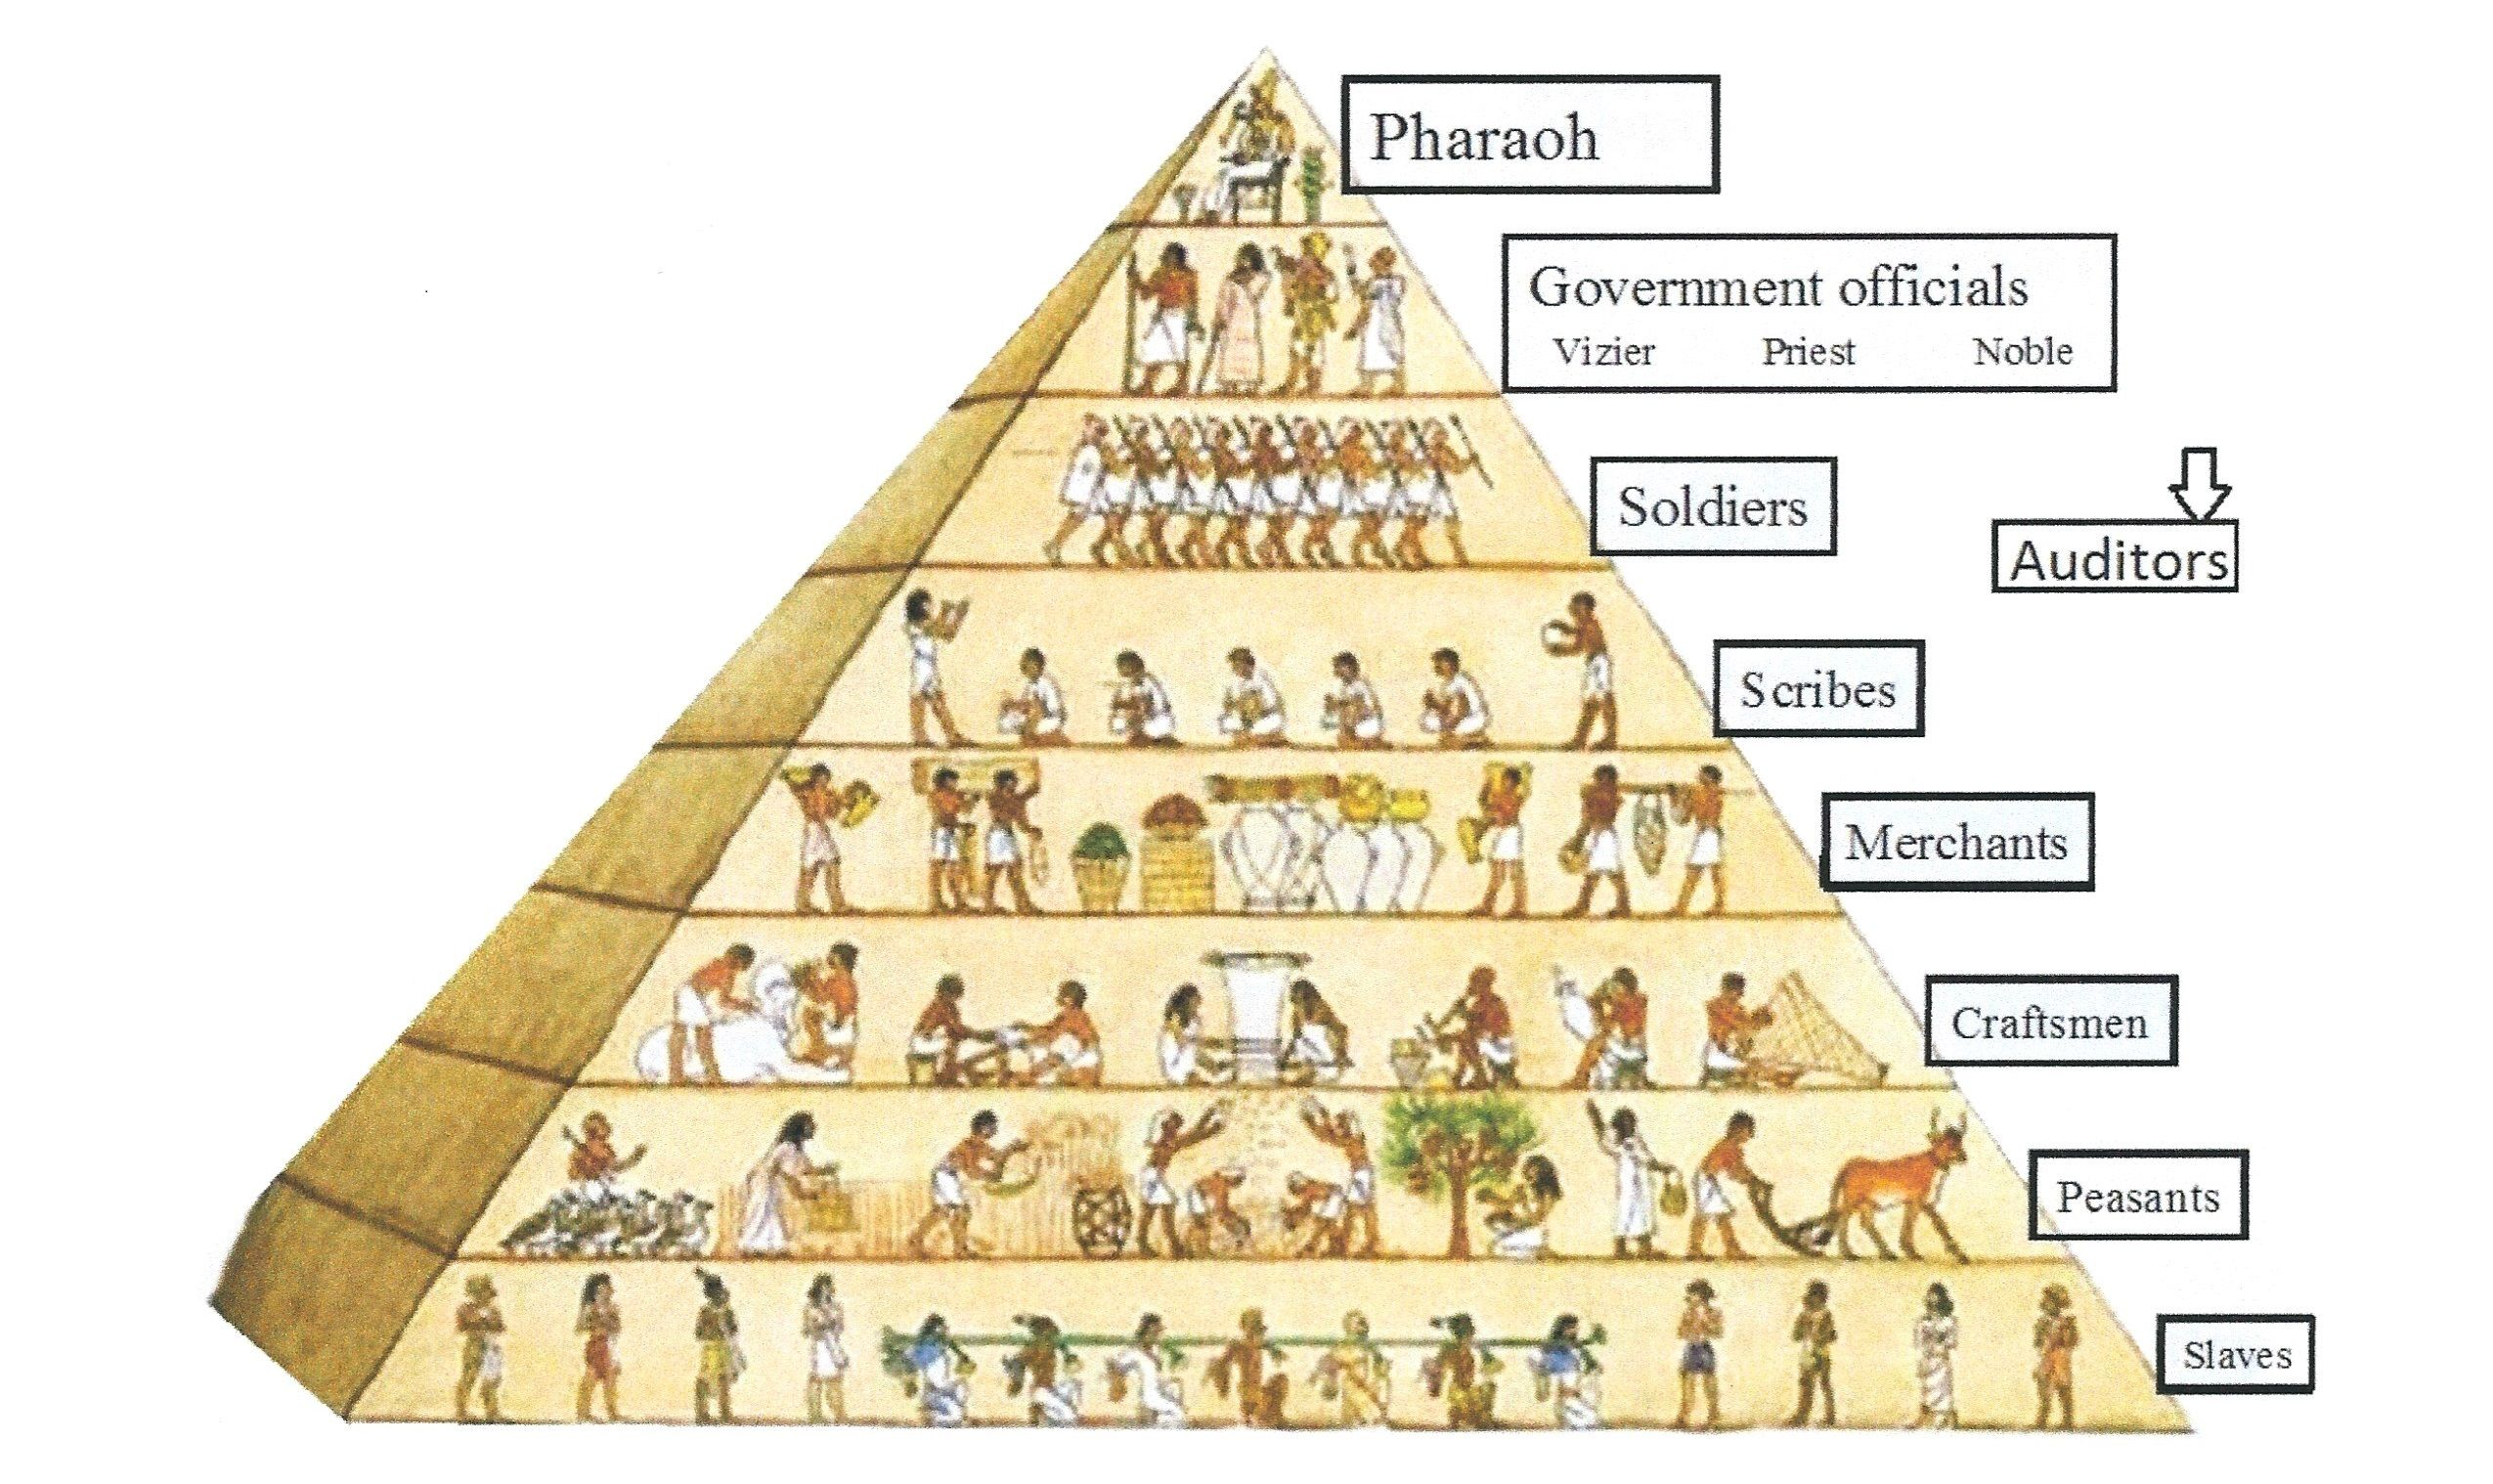 The Pyramid Of Translation Rates And Your Place In It